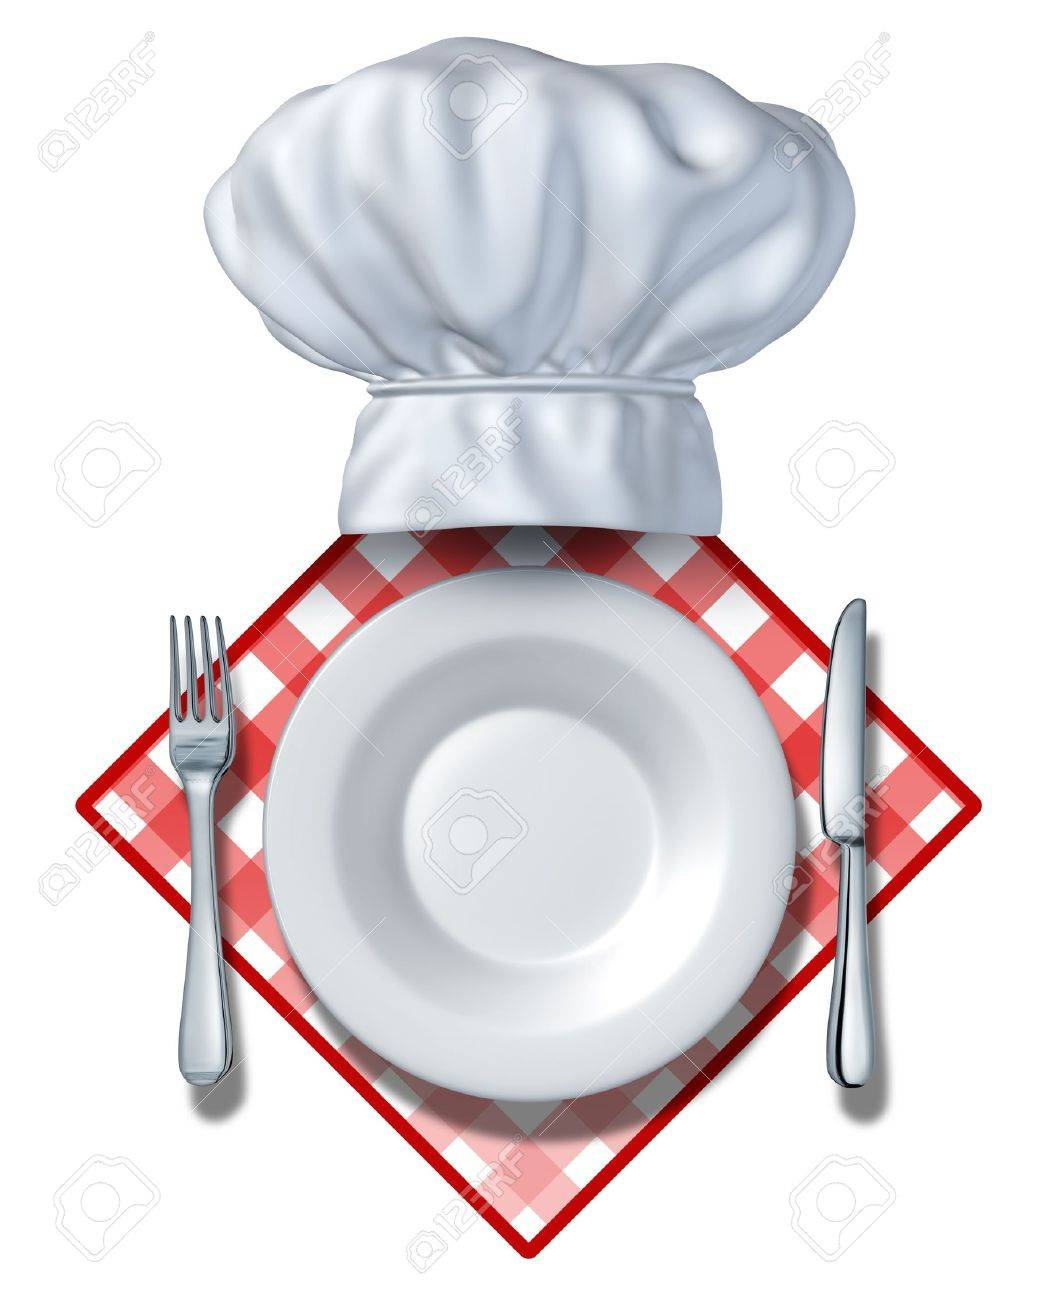 Restaurant design element with a plate and chef hat and fork with  knife on a blank area for your text and white background on a table cloth for dinners and cooking food vendors or cafeterias and caterers who serve and cater to hungry clients. Stock Photo - 12353871